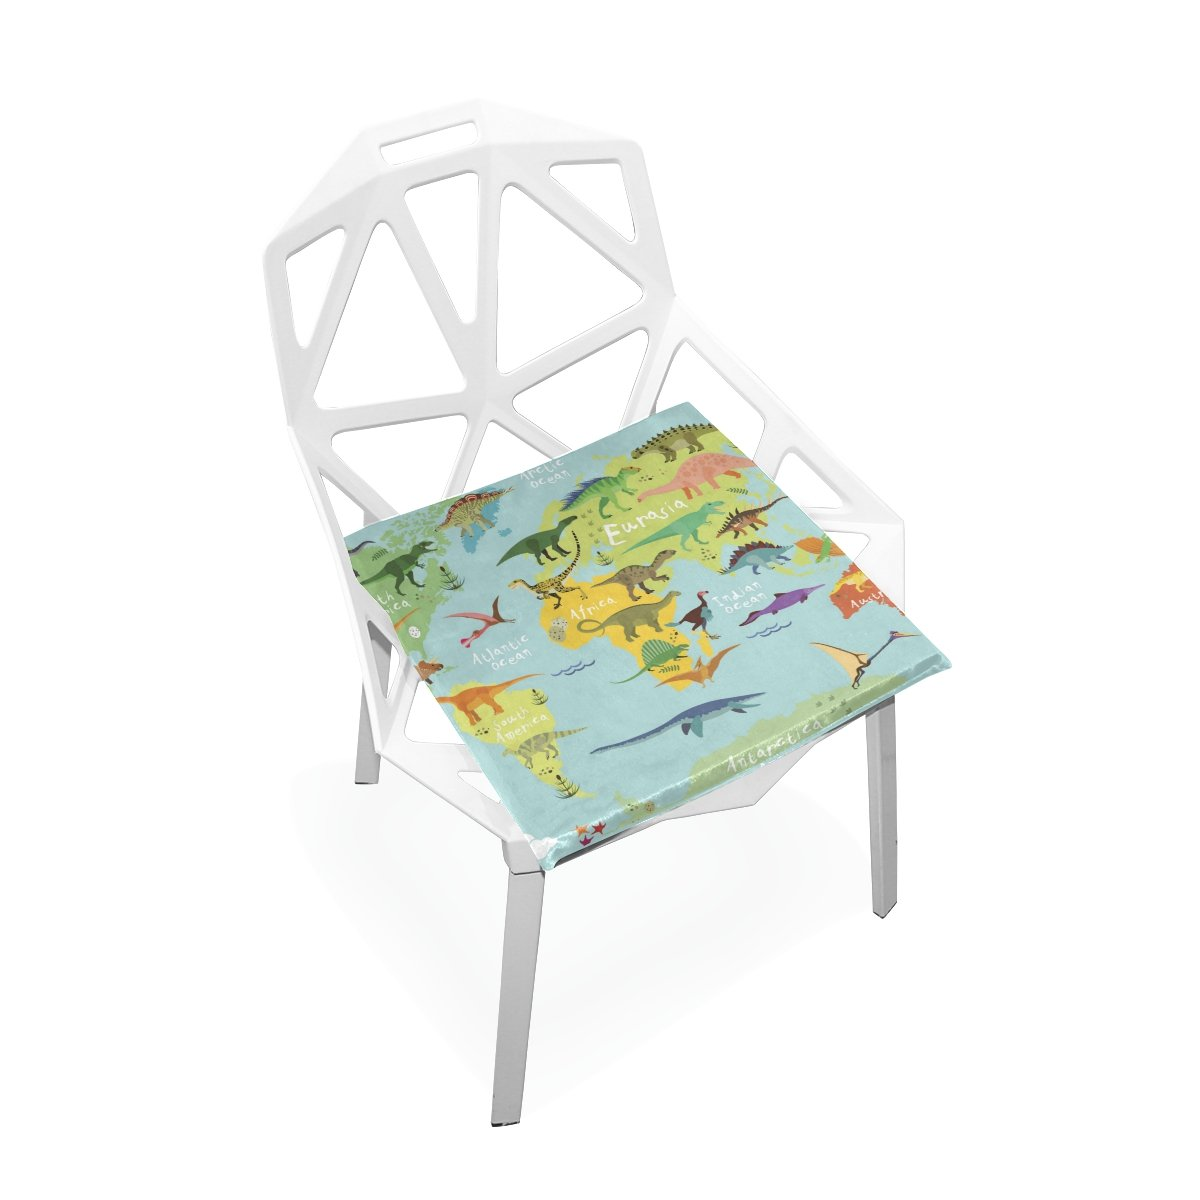 PLAO Chair Pads Dinosaurs Map Of The World Soft Seat Cushions Nonslip Chair Mats for Dining, Patio, Camping, Kitchen Chairs, Home Decor